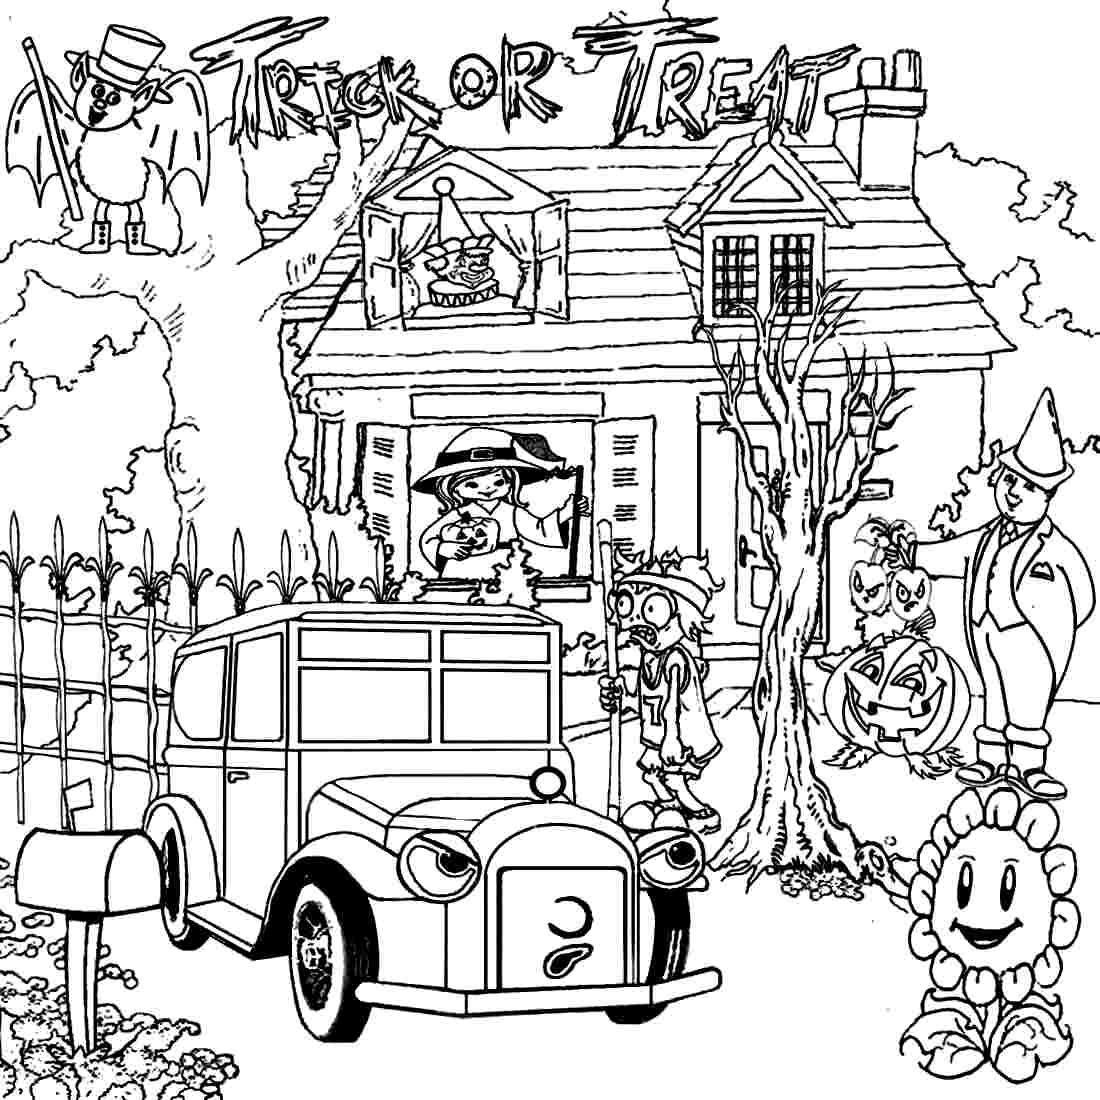 haunted house coloring pages printables free printable haunted house coloring pages for kids house printables coloring pages haunted